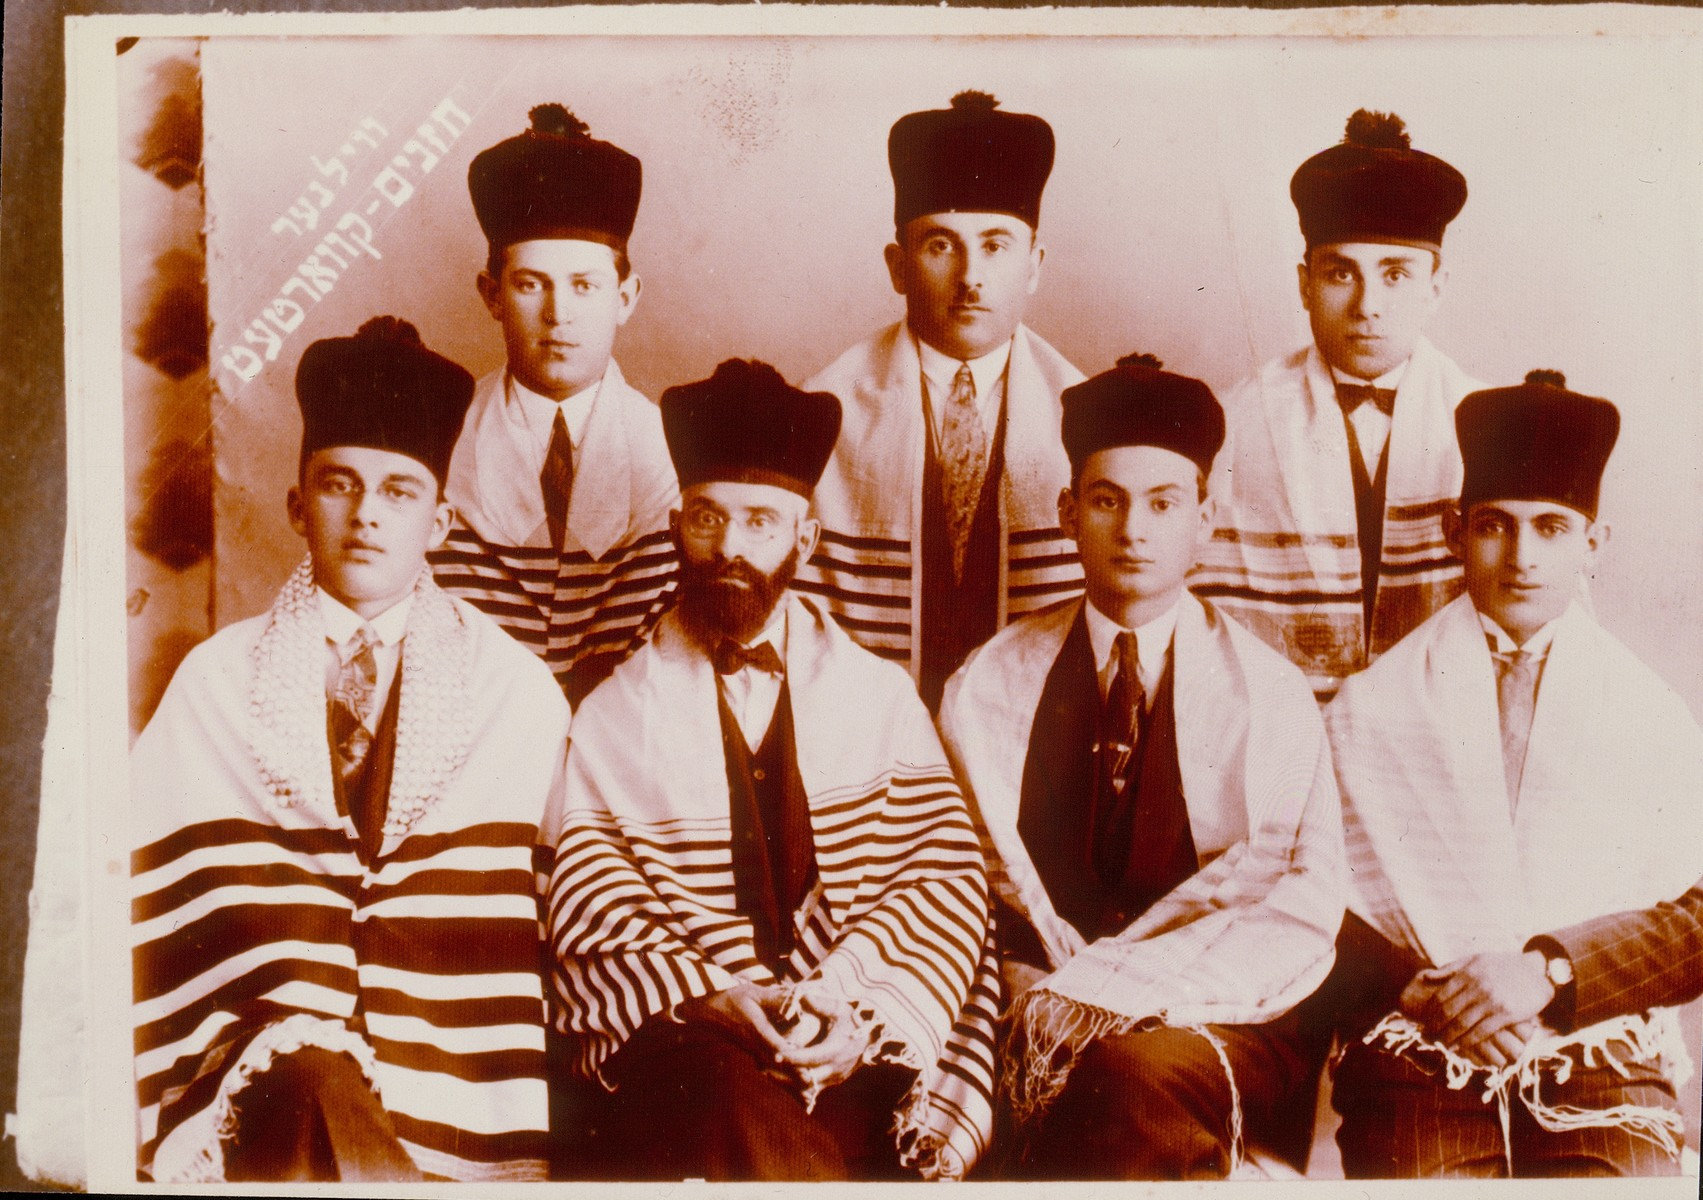 Group portrait of the members of the Vilna Hazzanim (cantors) Quartet, which continued to be known as such even after it expanded.  Among those pictured is Akiva Durmashkin (first row, second from the left).  Durmashkin was a prominent Vilna musician, music teacher and director of the choir of the Great Synagogue.  He was in the Vilna Ghetto and was killed on Ponary.